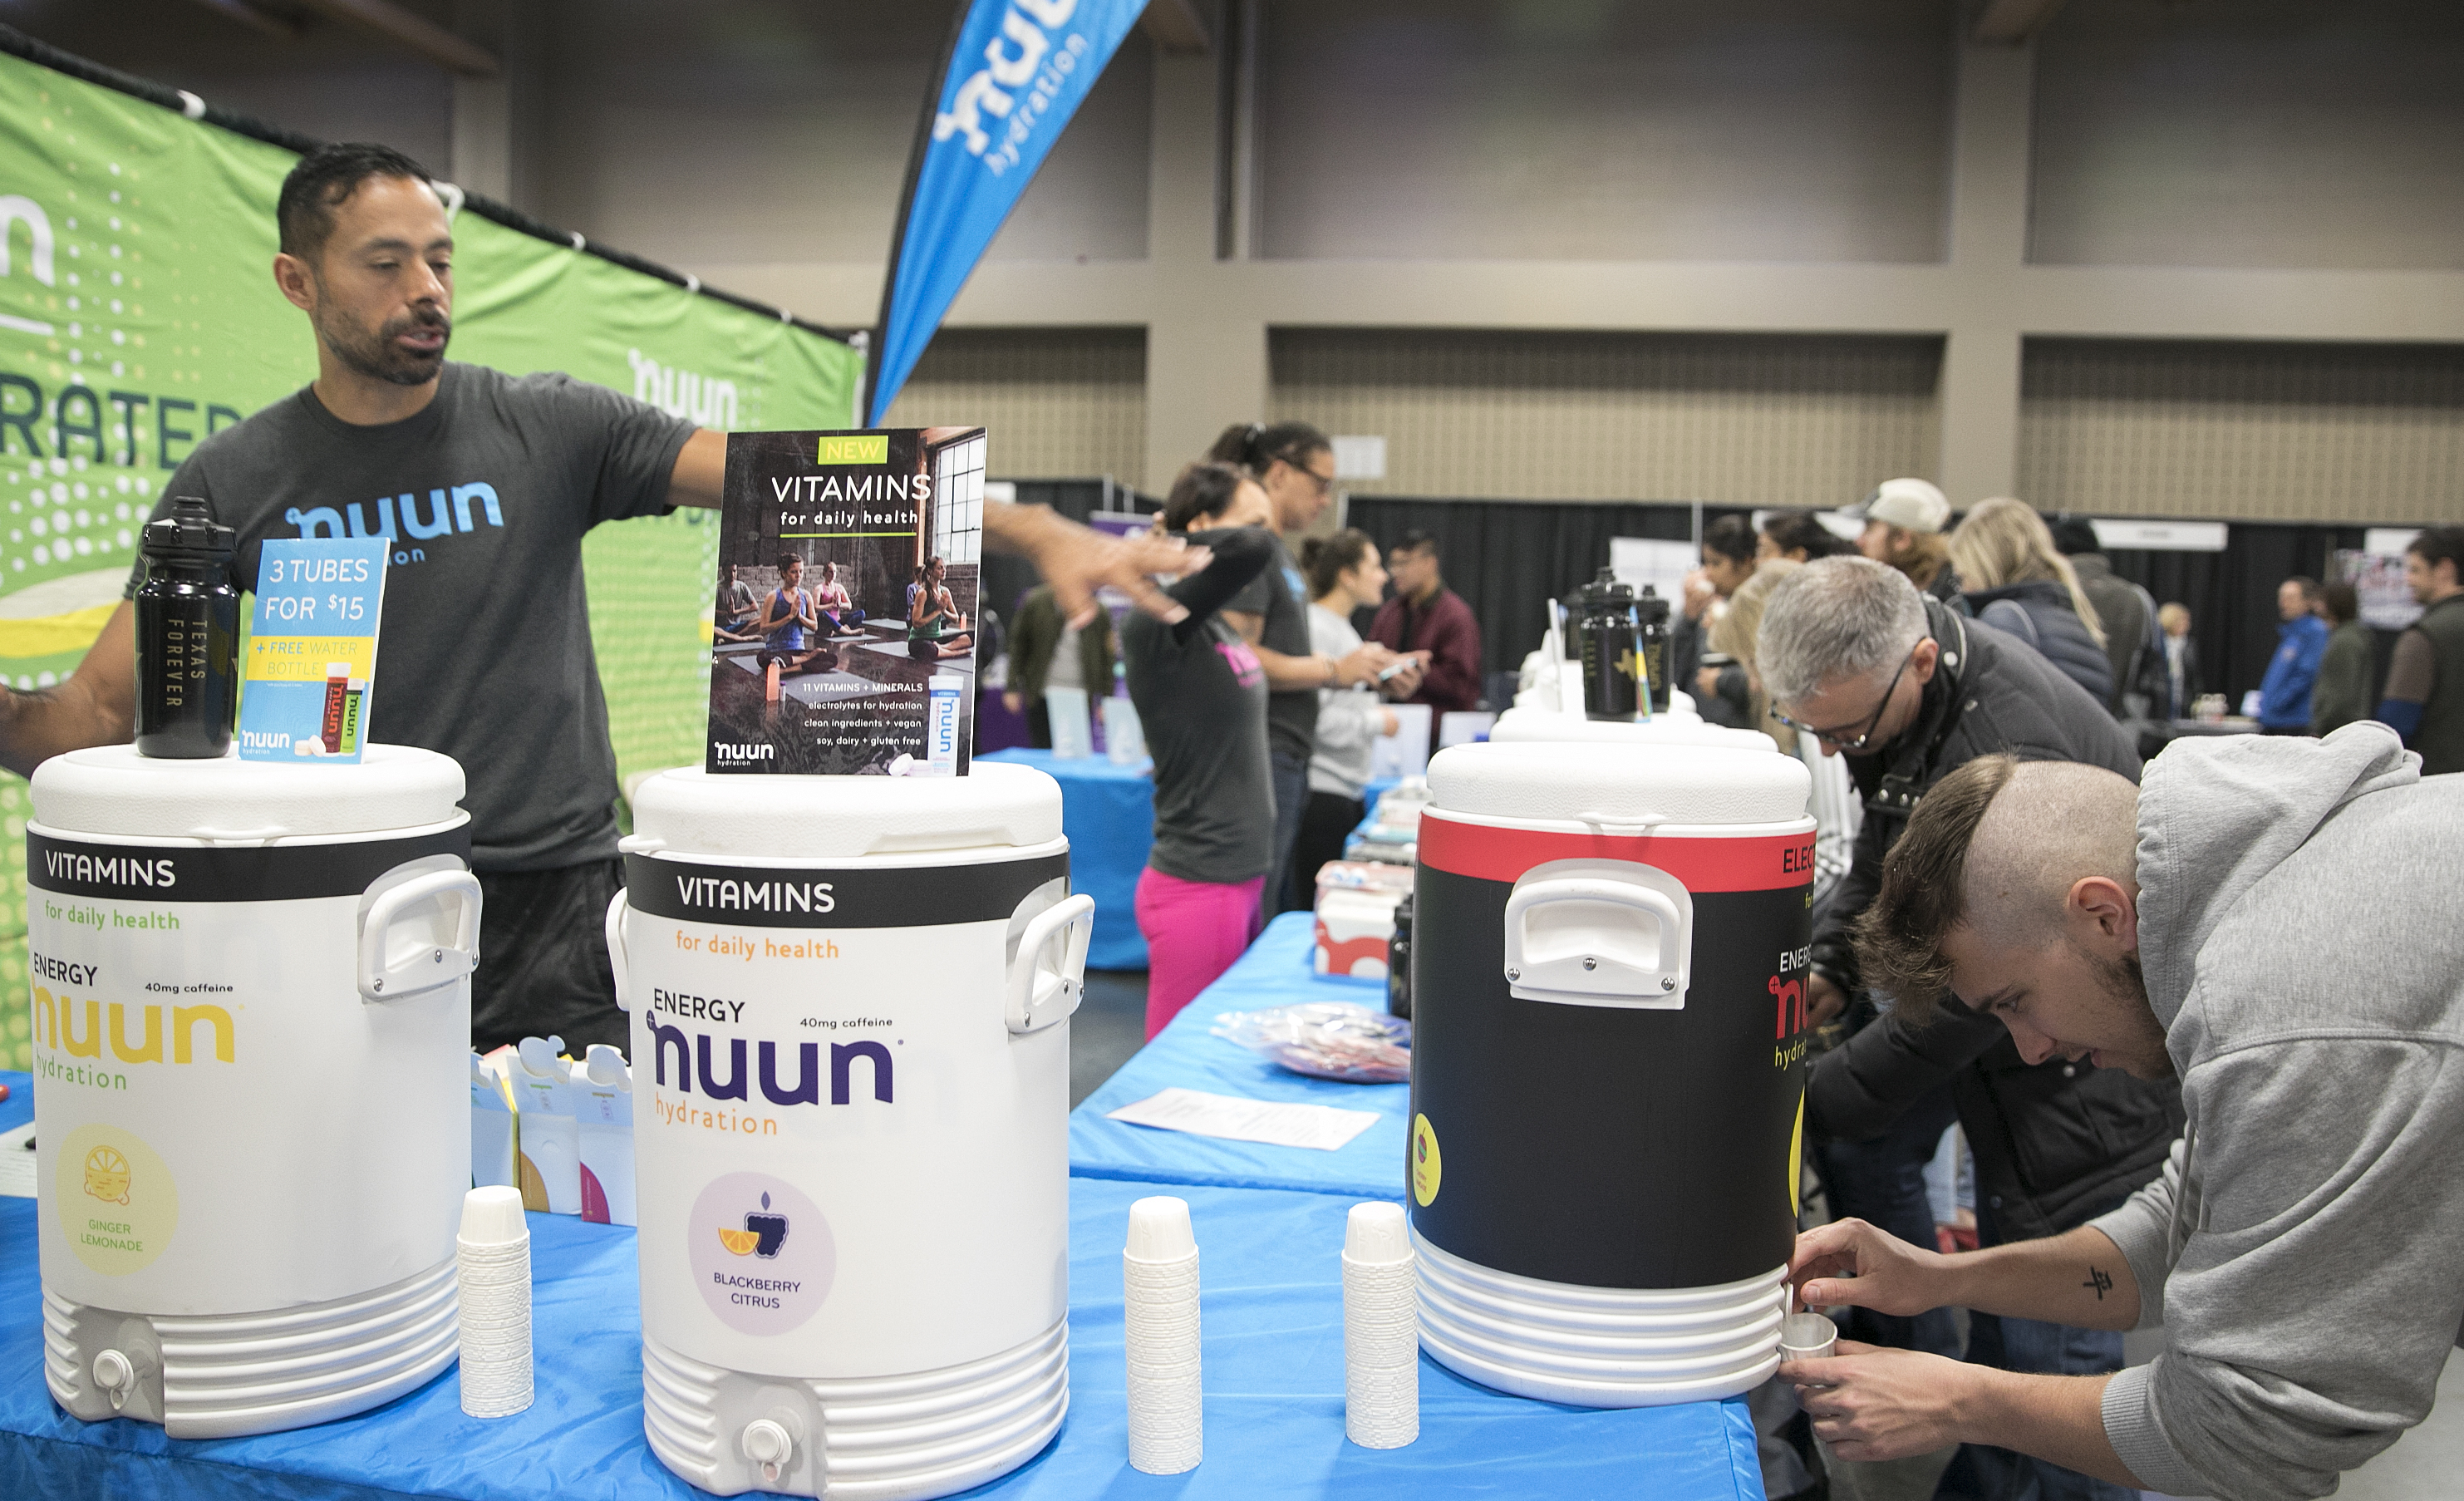 Runners hydrate with nuun at the Austin Marathon expo. Proper hydration is one of our tips to run your best.